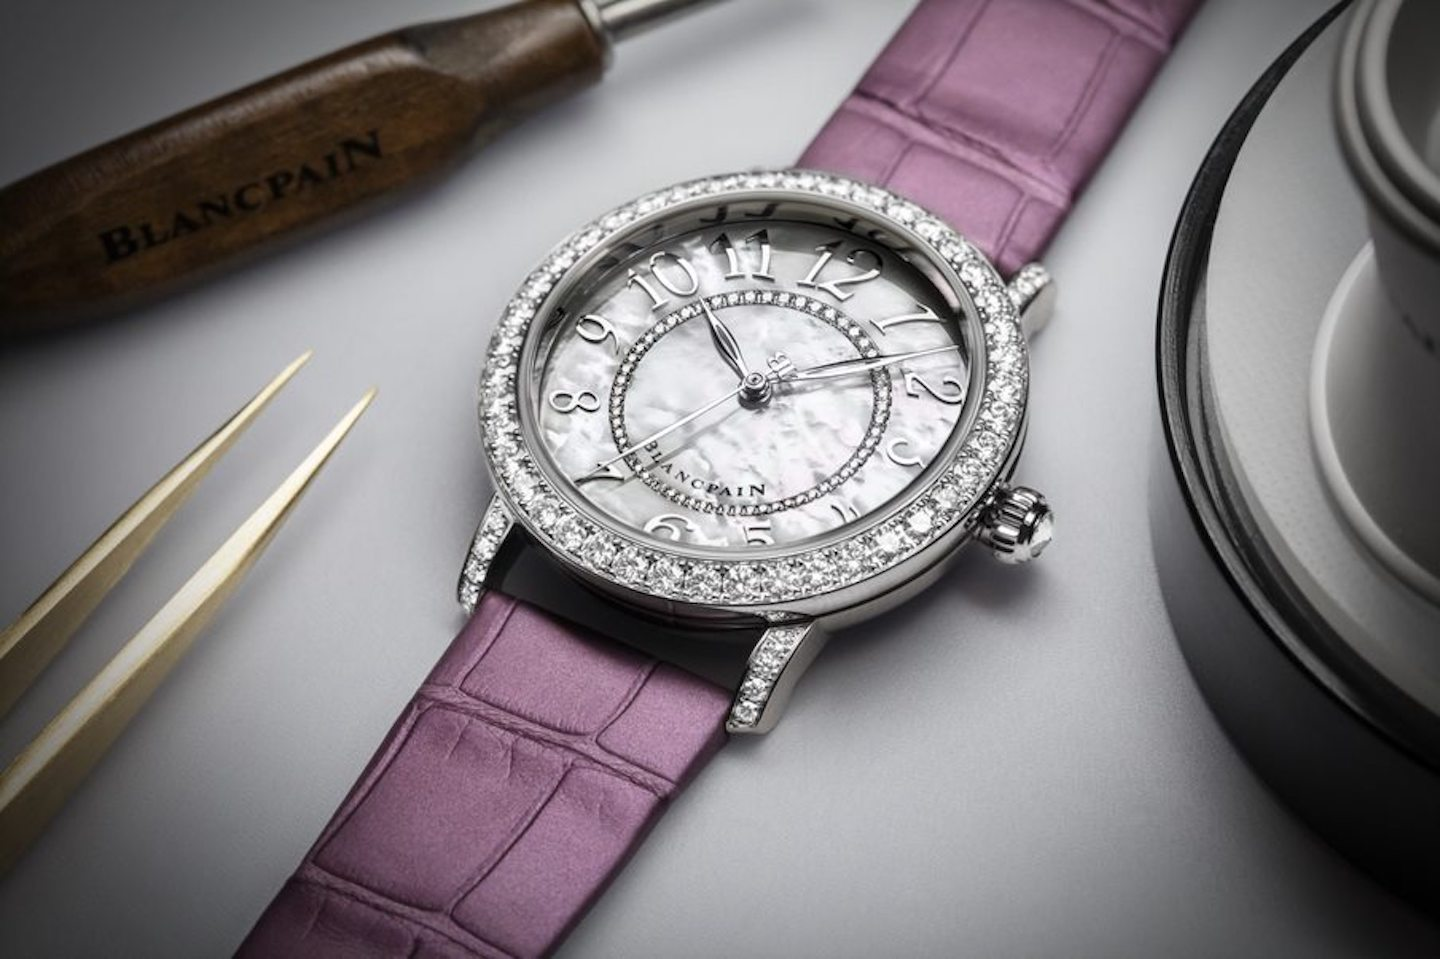 Blancpain Ladybird Colors 3660 1954 V55A Lifestyle